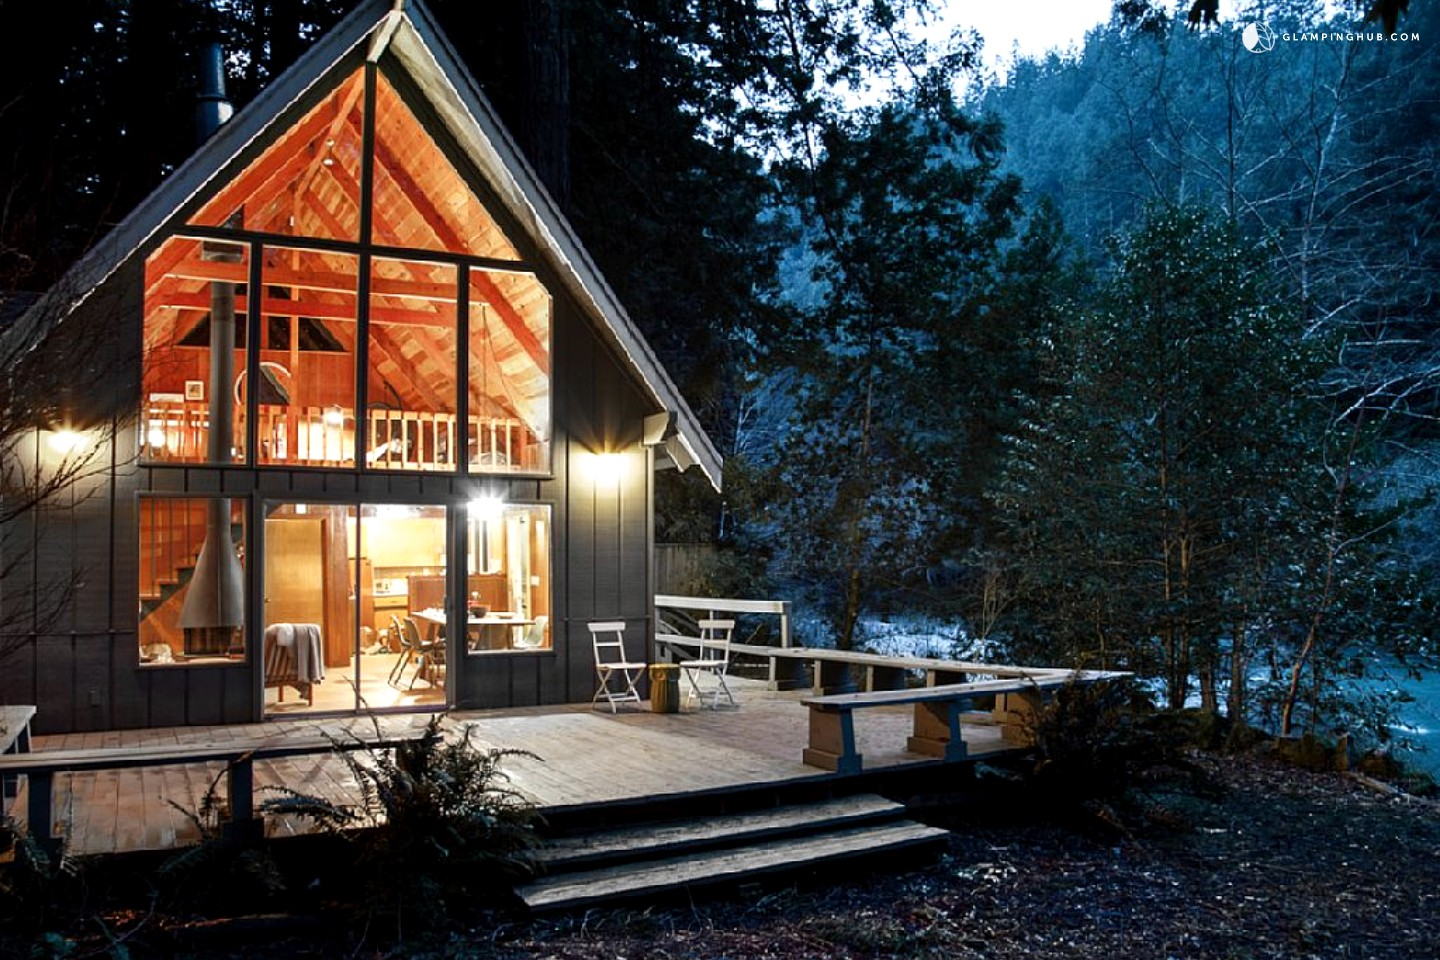 northern california redwoods cabin rental